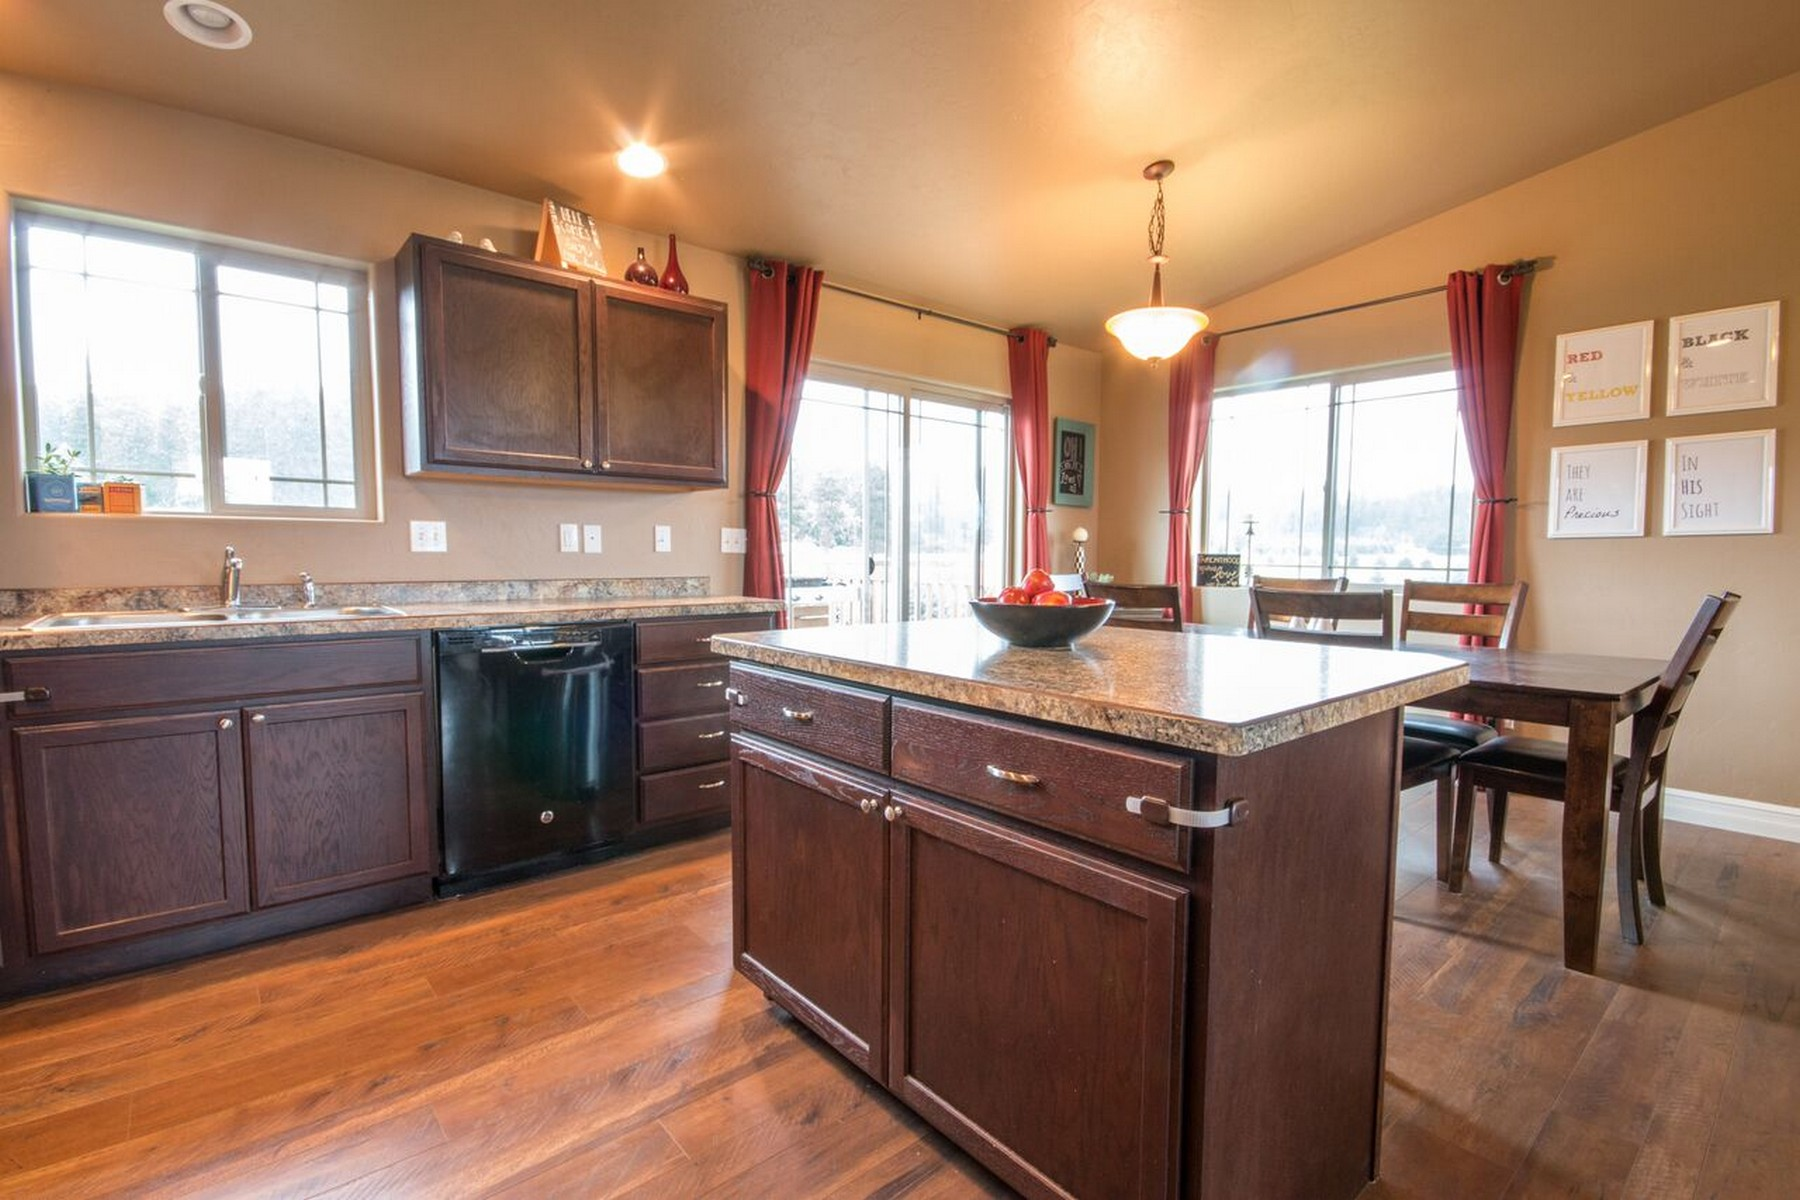 Additional photo for property listing at 1181 Mill Creek Dr , Bigfork, MT 59911 1181  Mill Creek Dr Bigfork, Montana 59911 United States